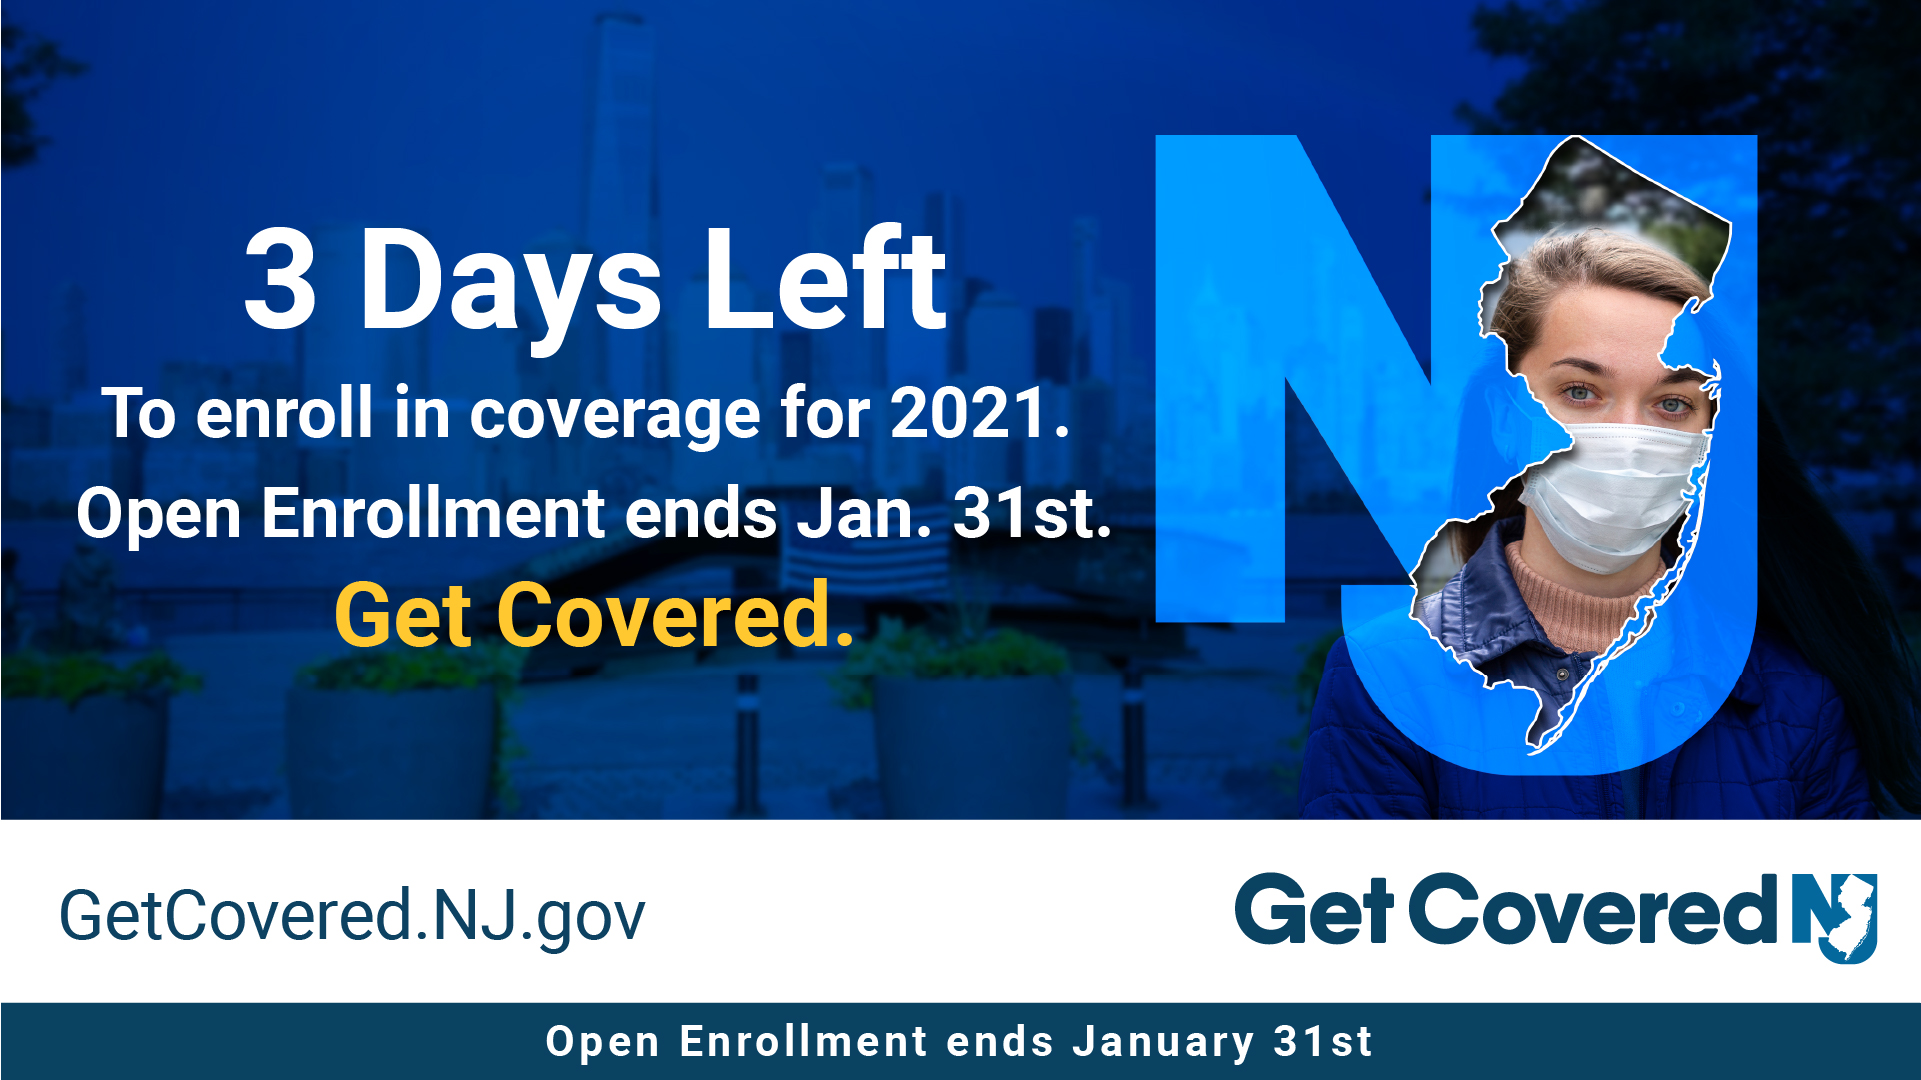 Image Contains screenshot of 3 Days left to enroll in coverage